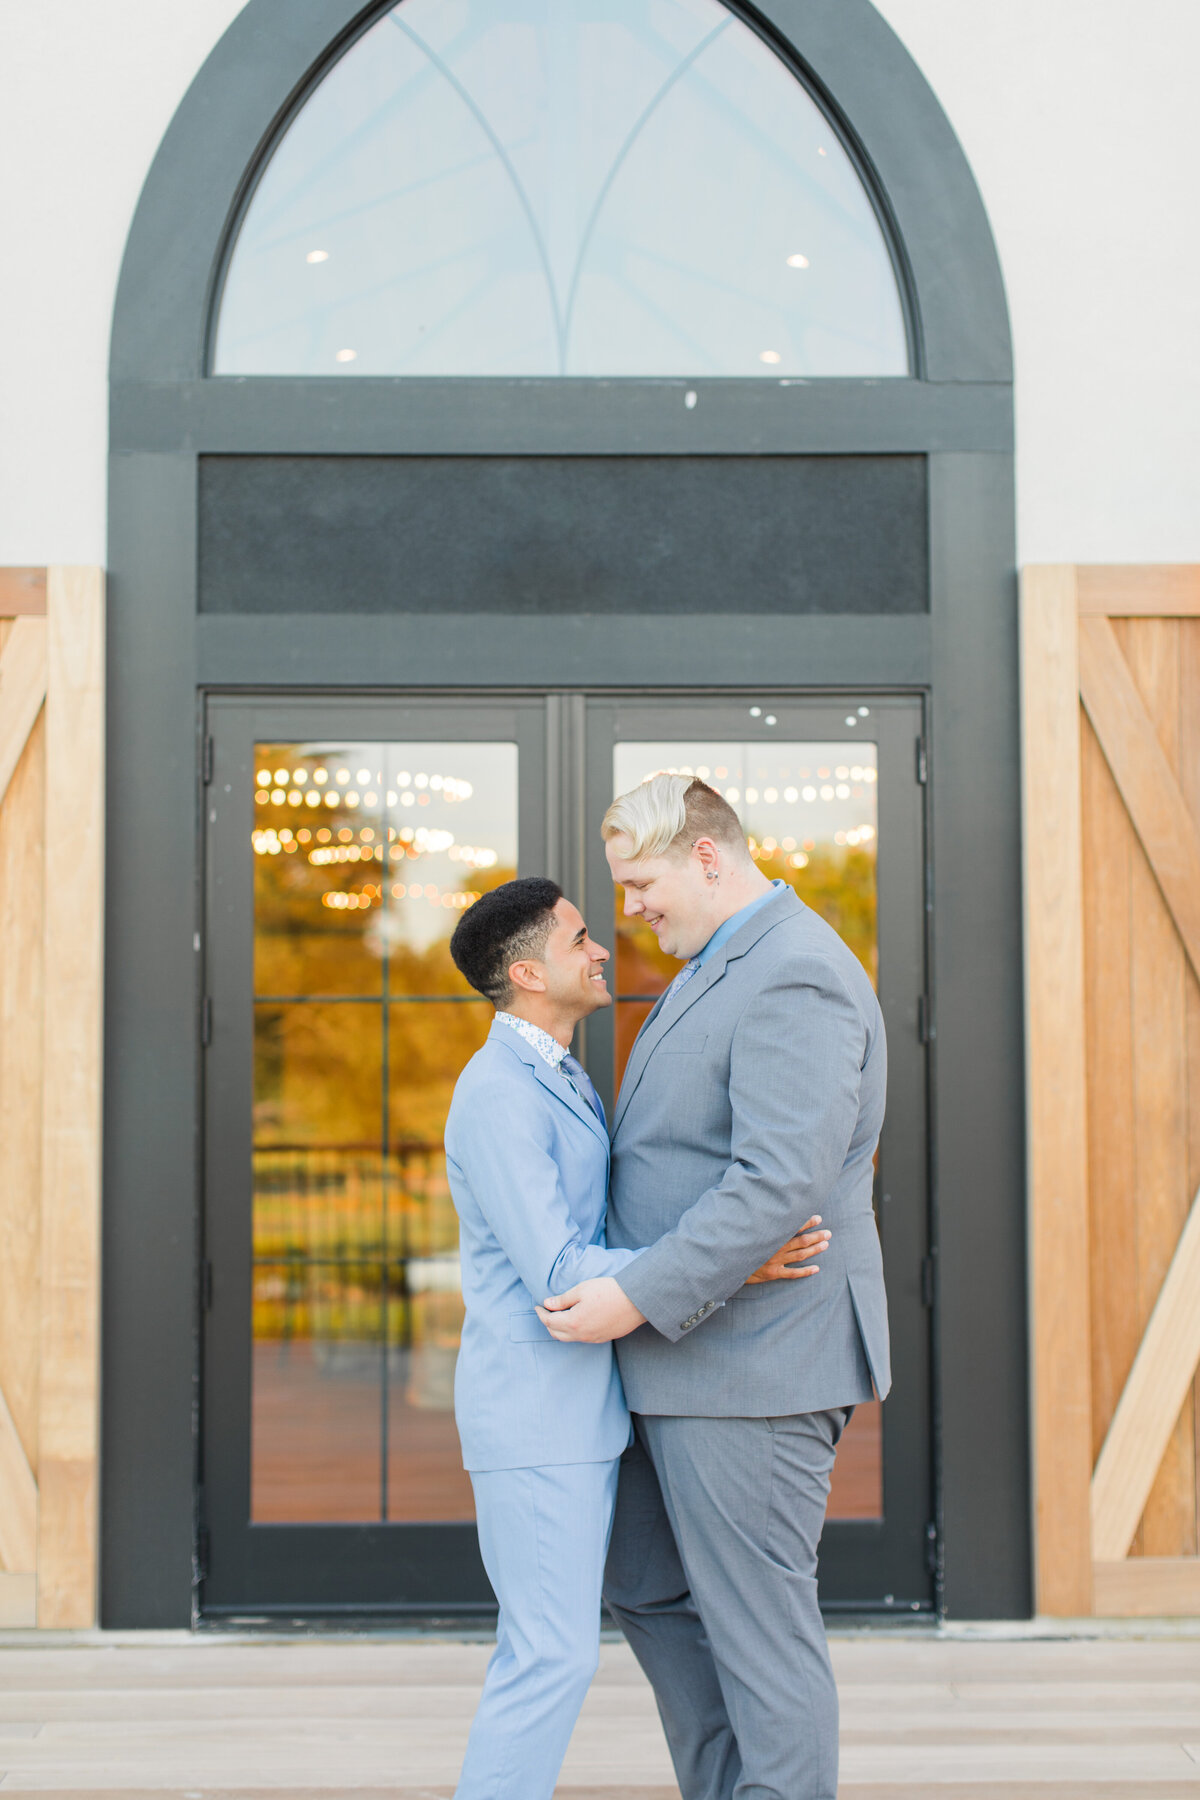 LGBTQ_Engagement_Session_Renault_Winery_Galloway_New_Jersey-63